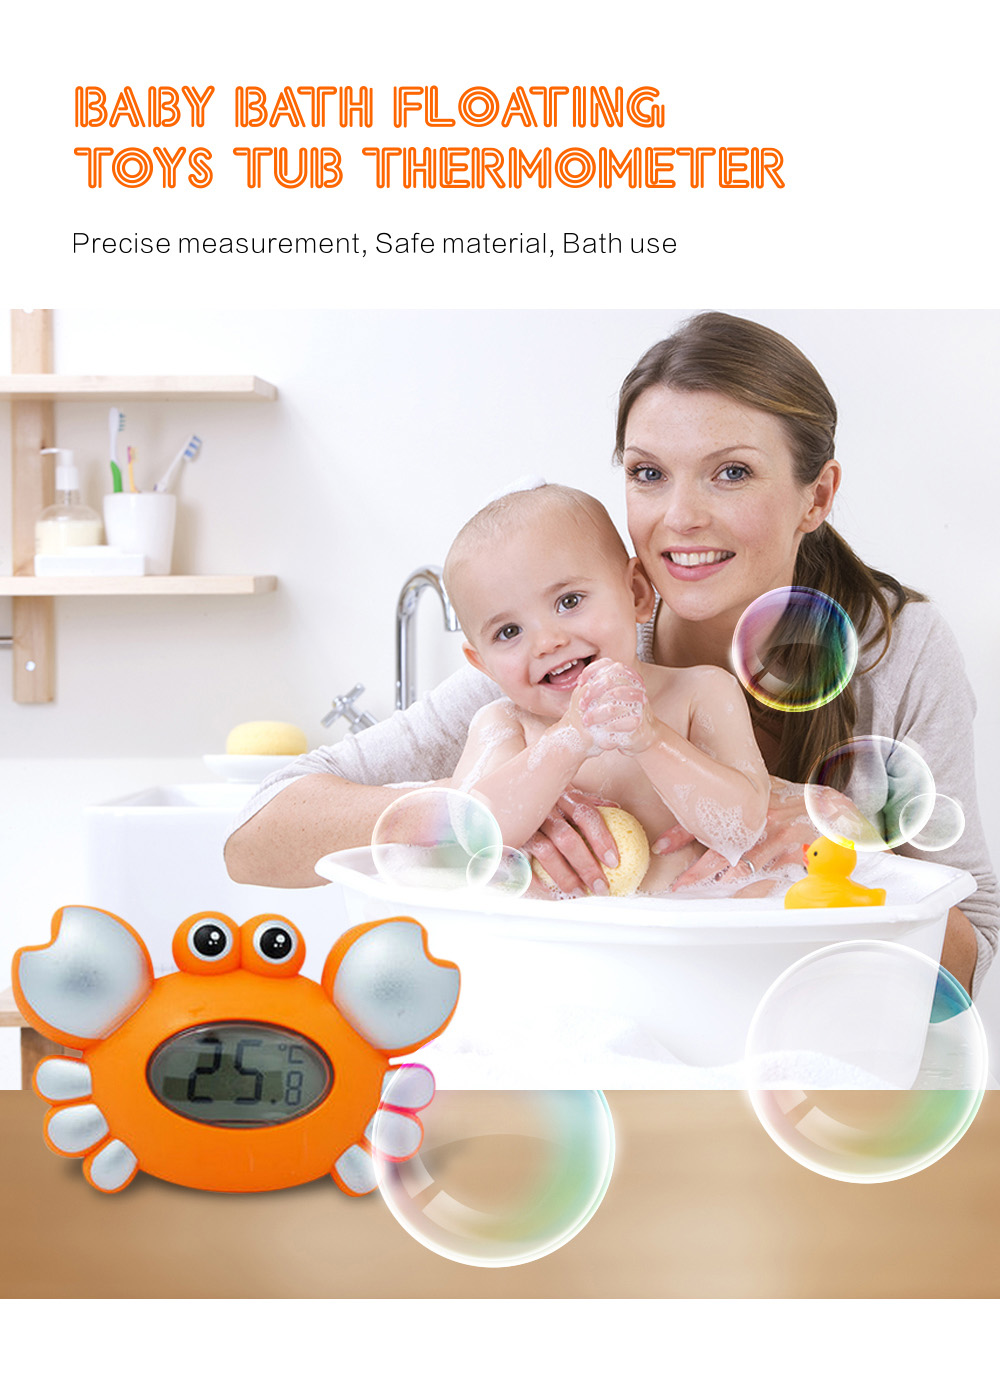 crab baby bath floating toy tub thermometer adding 4pcs jenga accessory 17 7 online shopping. Black Bedroom Furniture Sets. Home Design Ideas